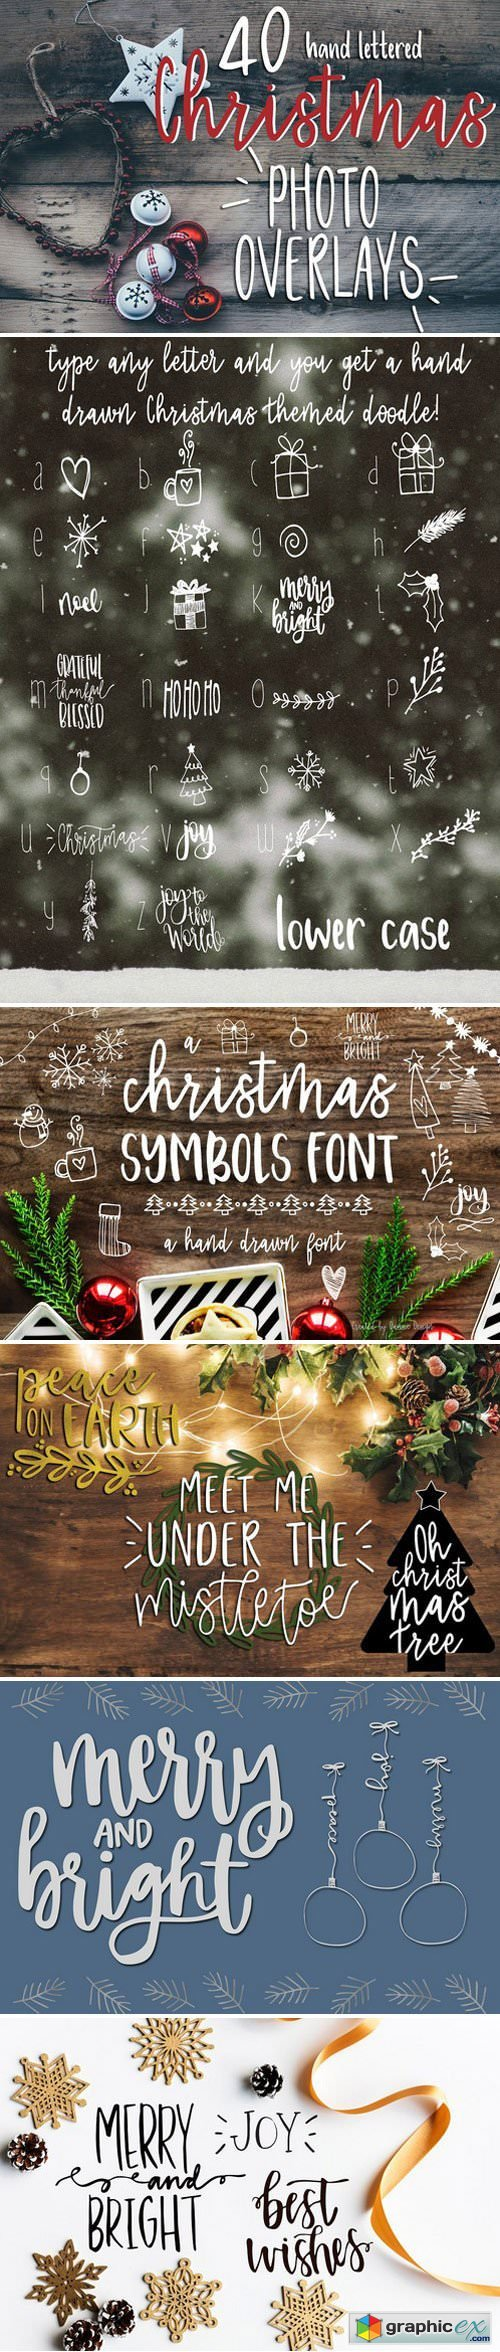 Christmas Photo Overlays + Free Font